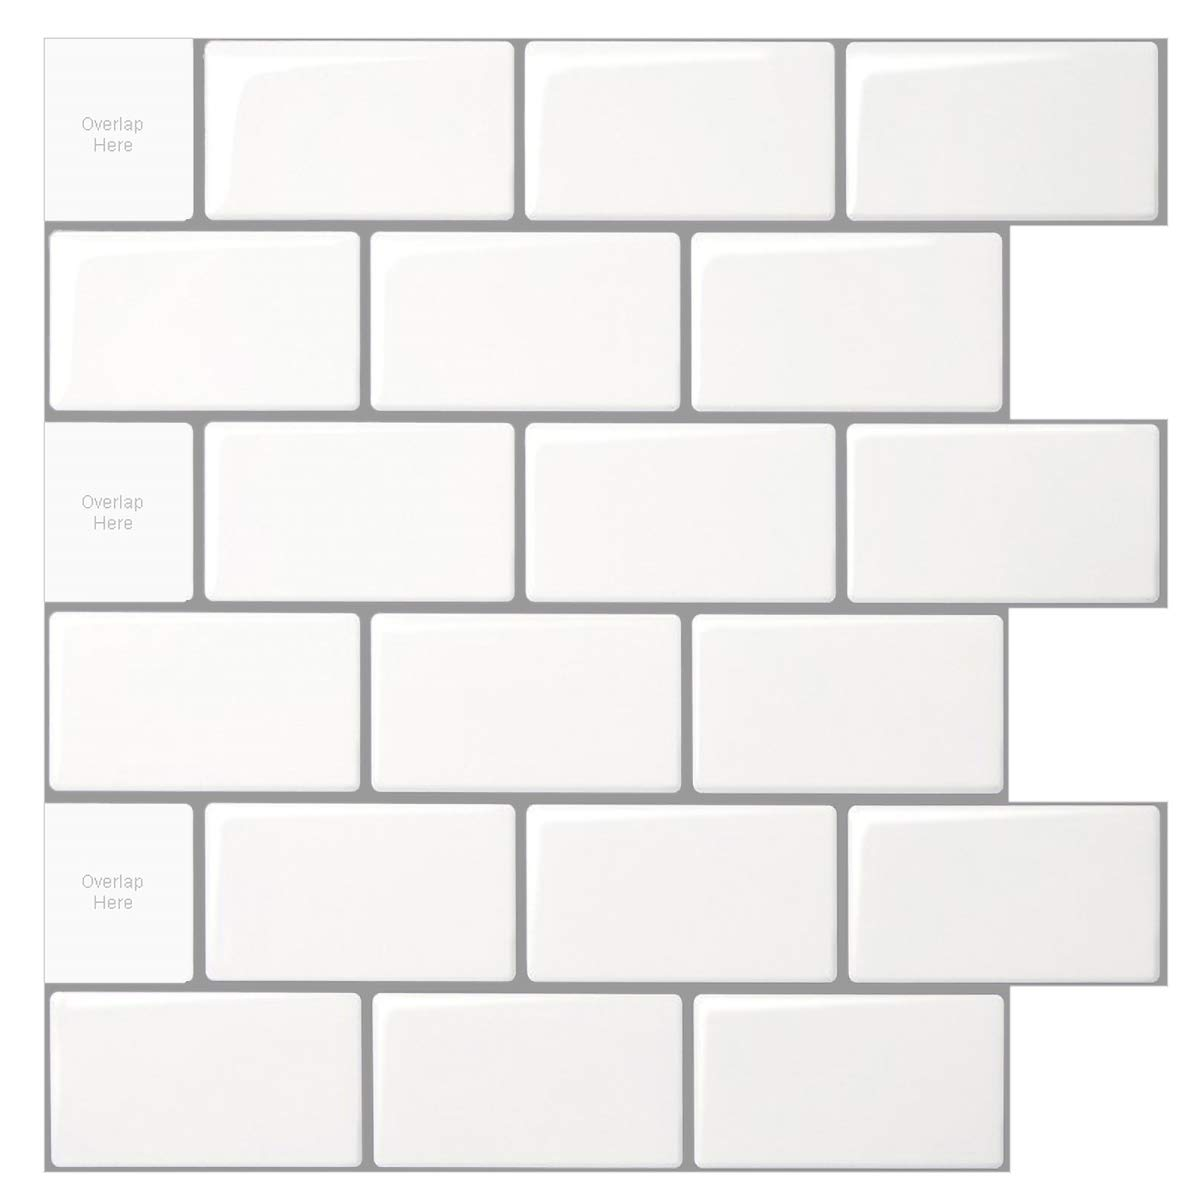 10 Sheet Peel And Stick Tile For Kitchen Backsplash 12x12 Inches White Subway Tile With Grey Grout